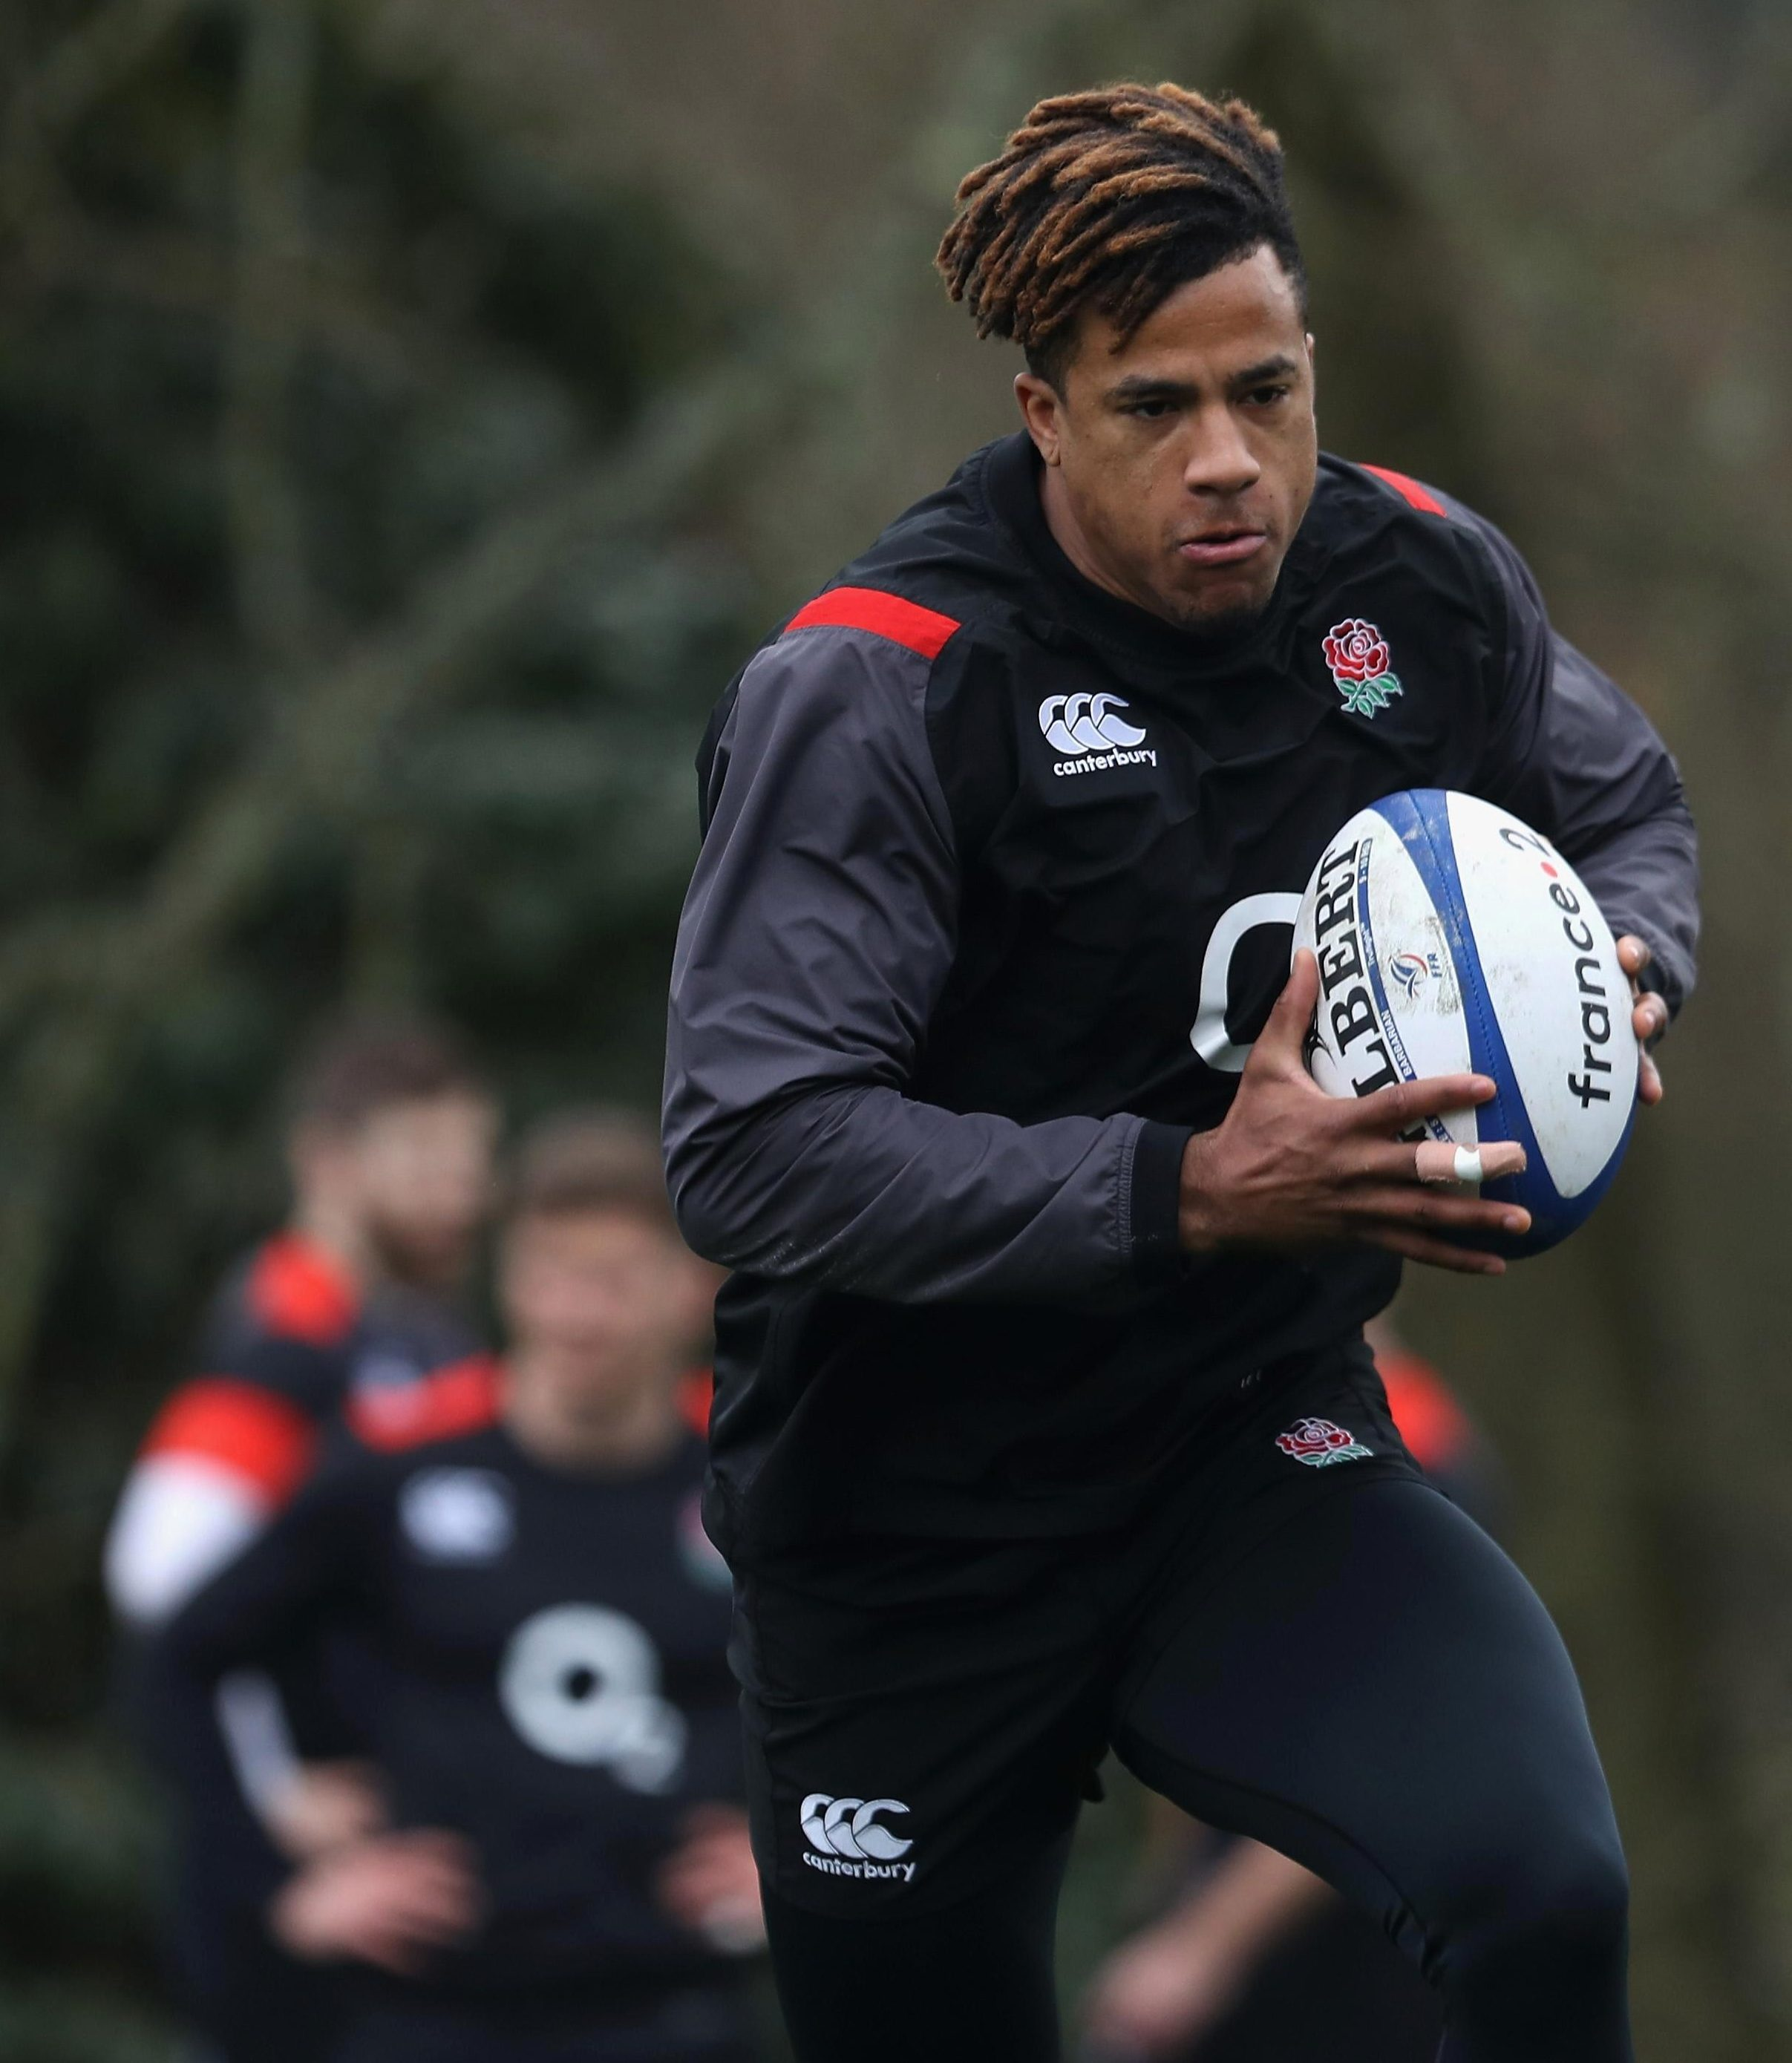 Anthony Watson & Co will have to get up to speed if England are to bounce back